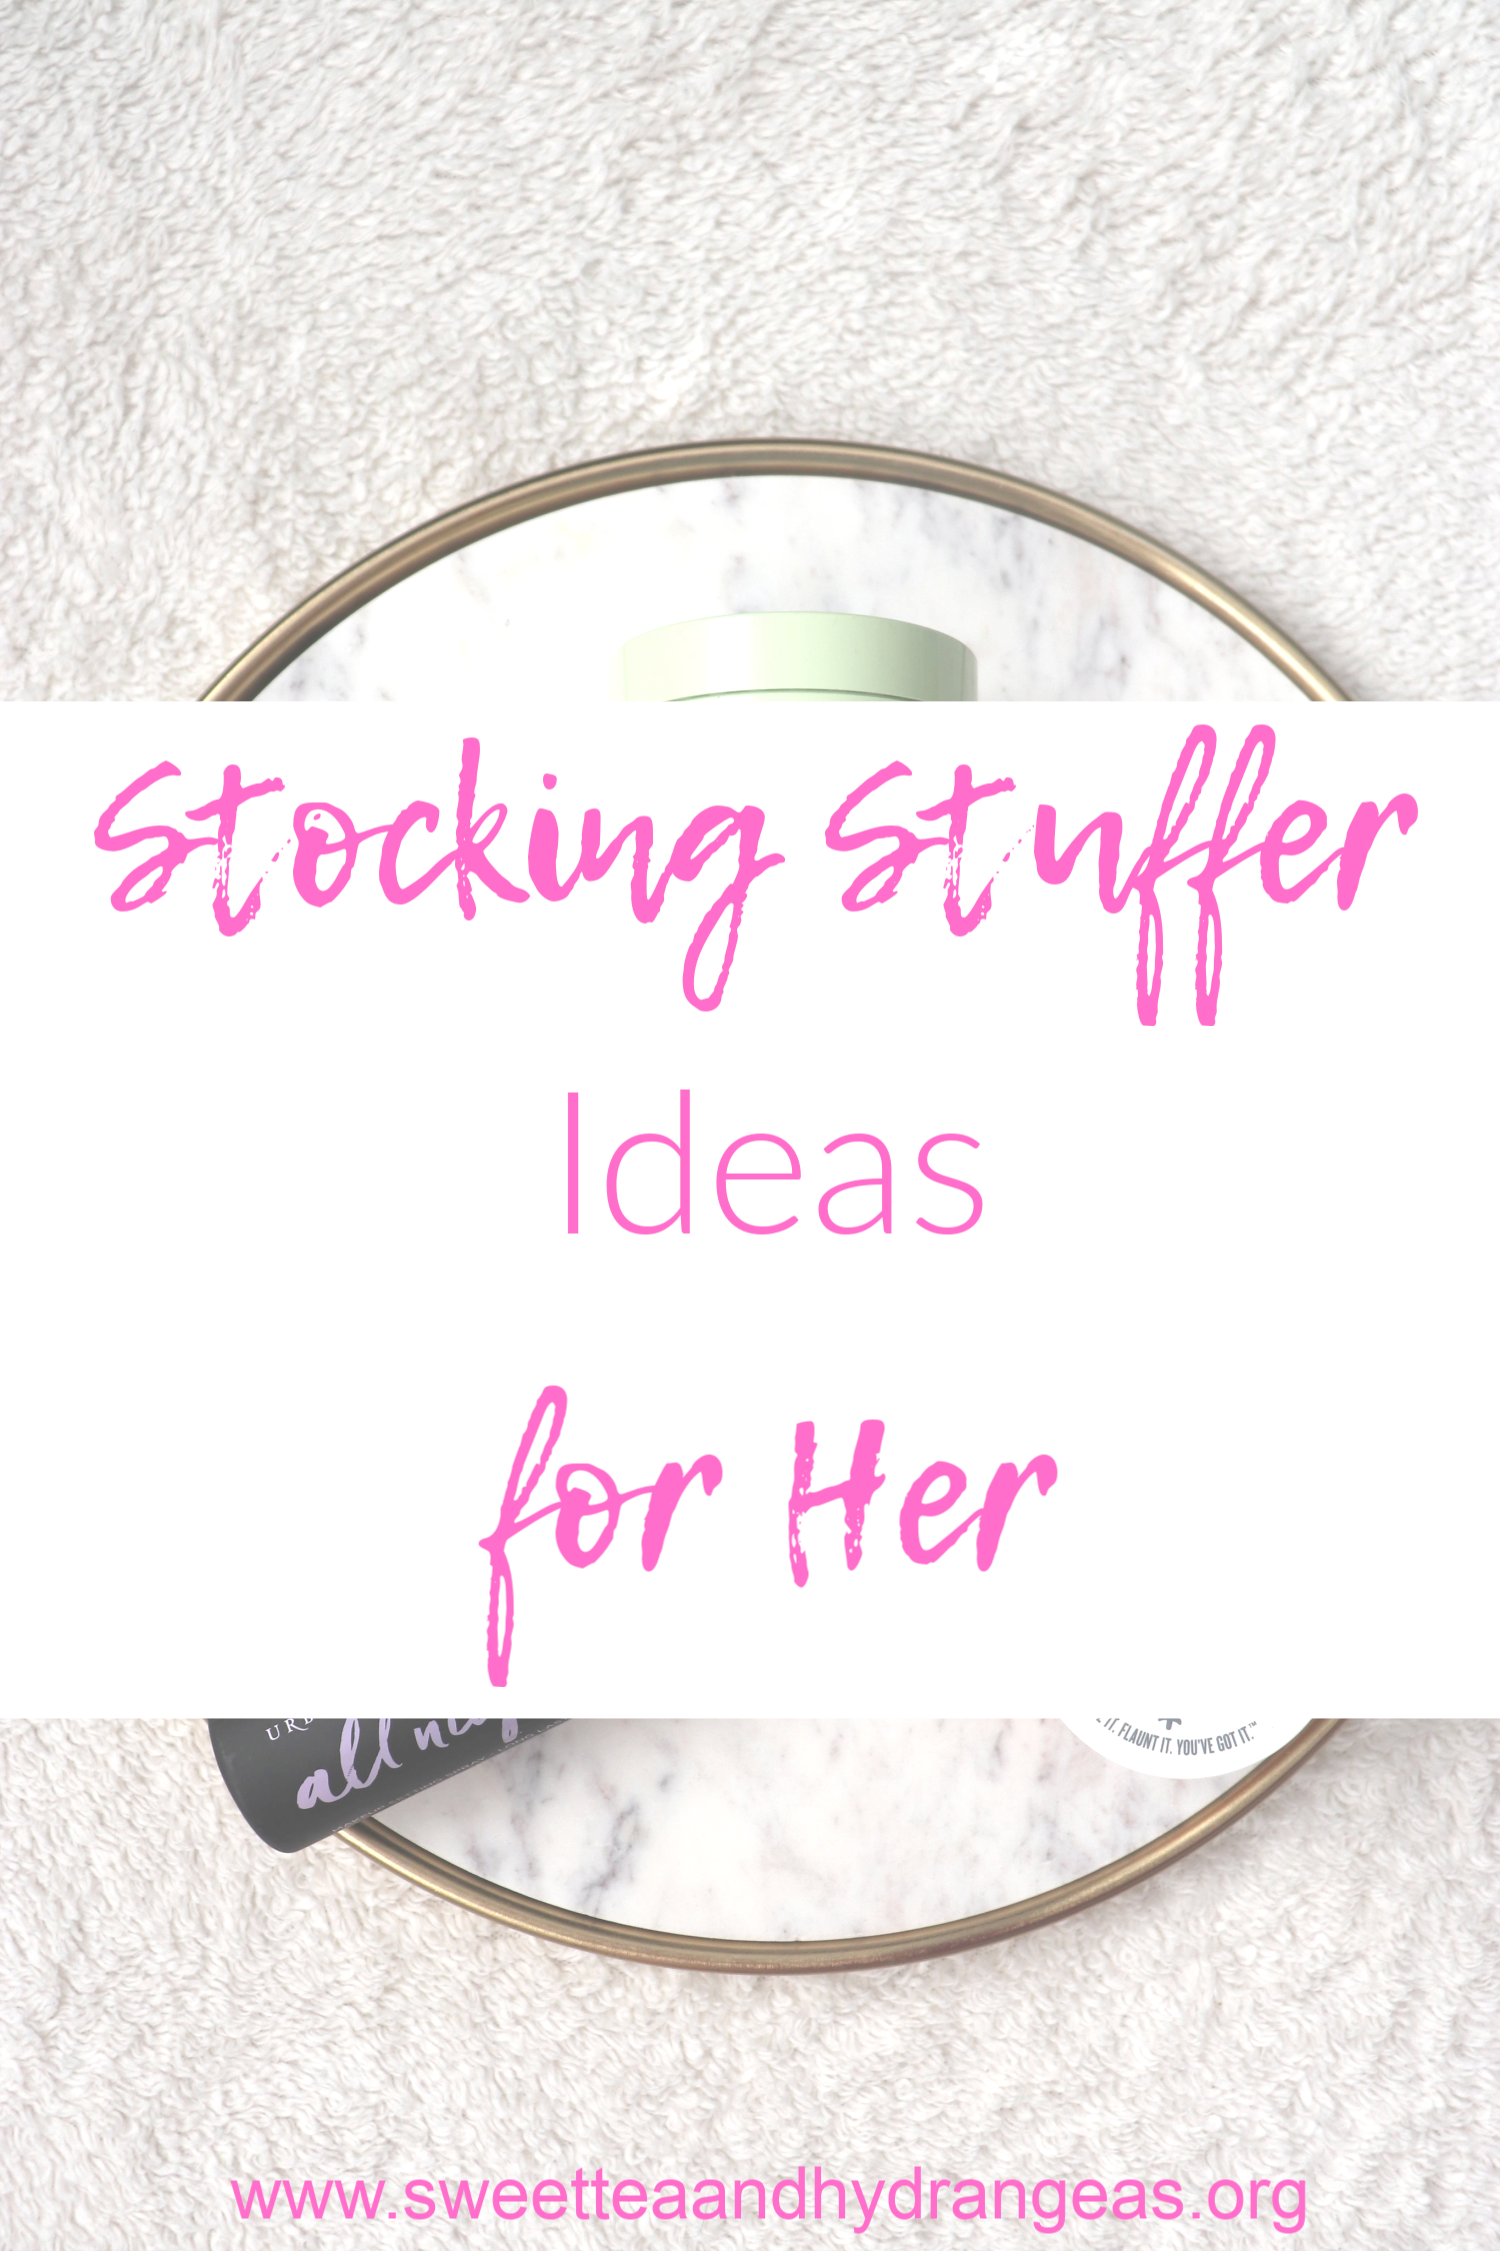 STH Stocking Stuff Ideas for Her